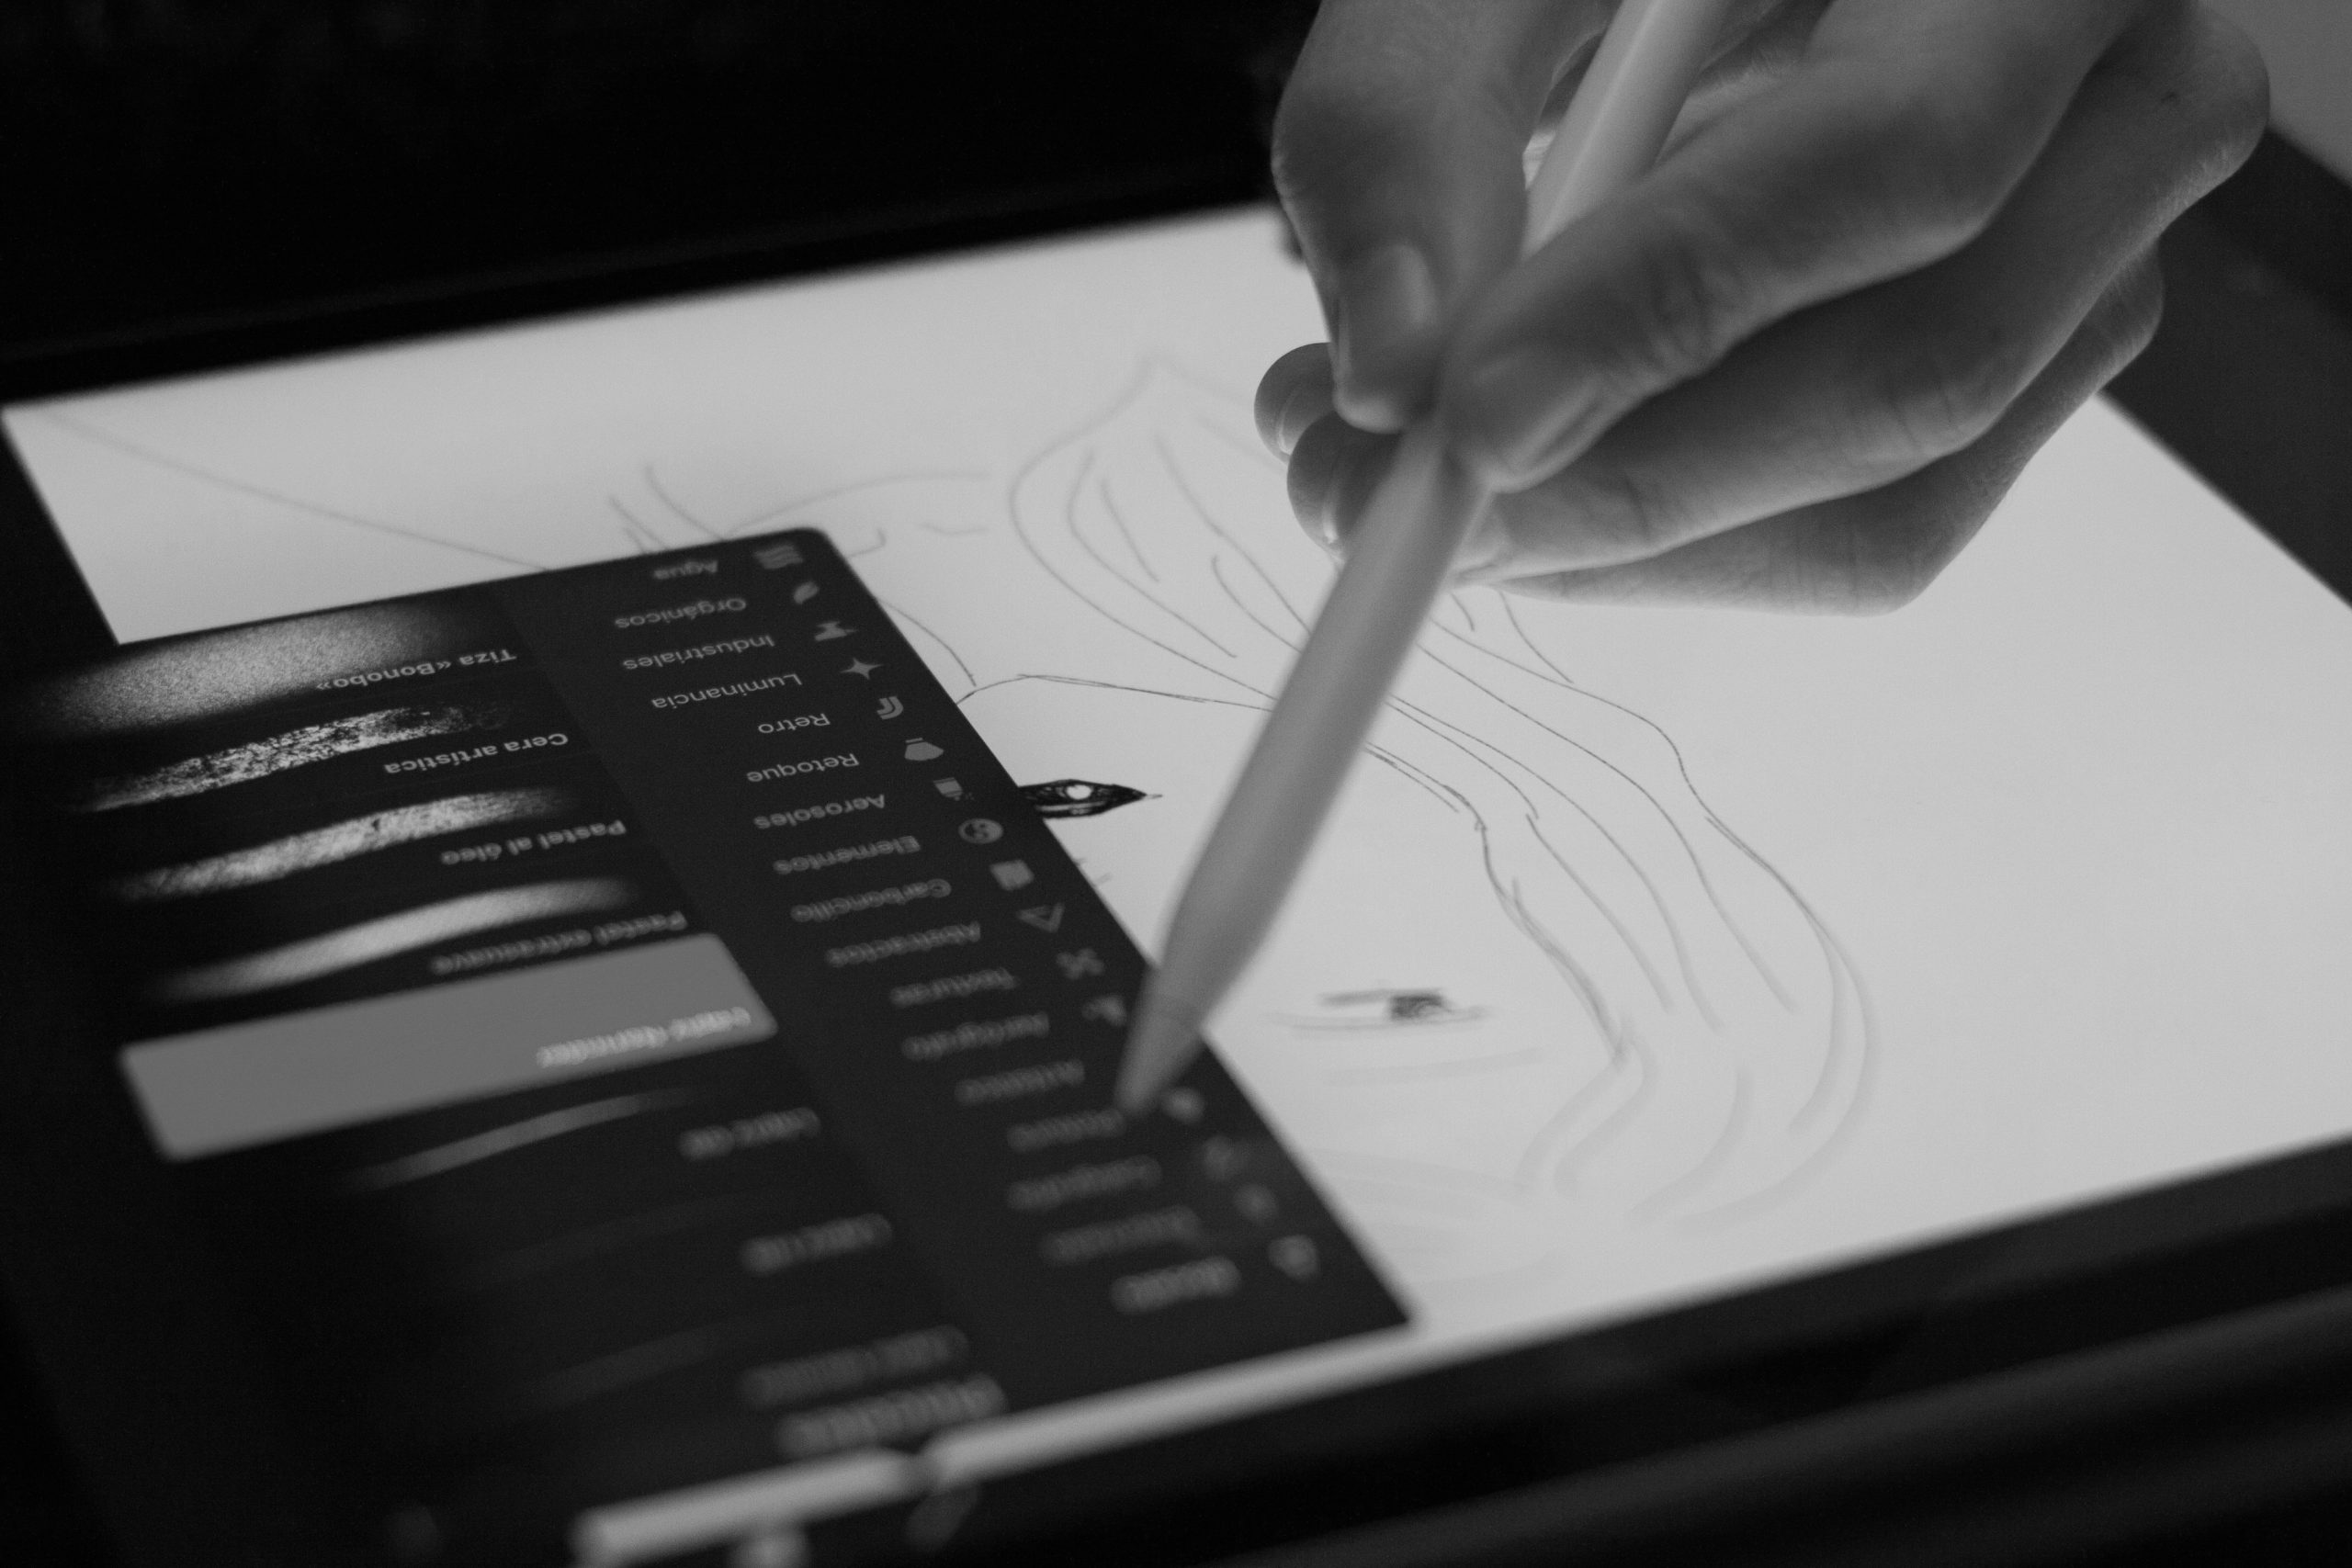 Hand using an iPad for illustration